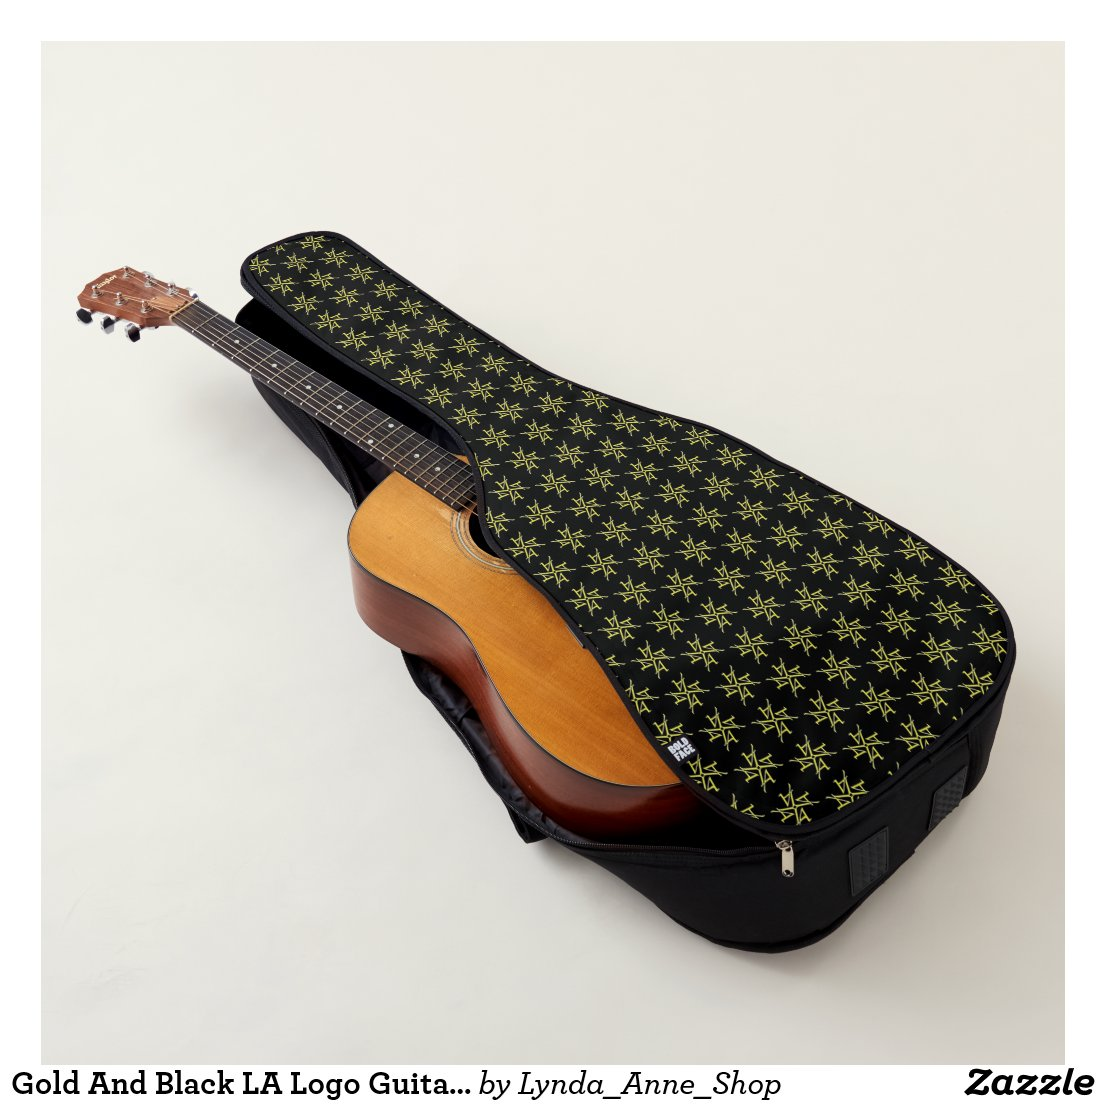 Gold And Black LA Logo Guitar Case